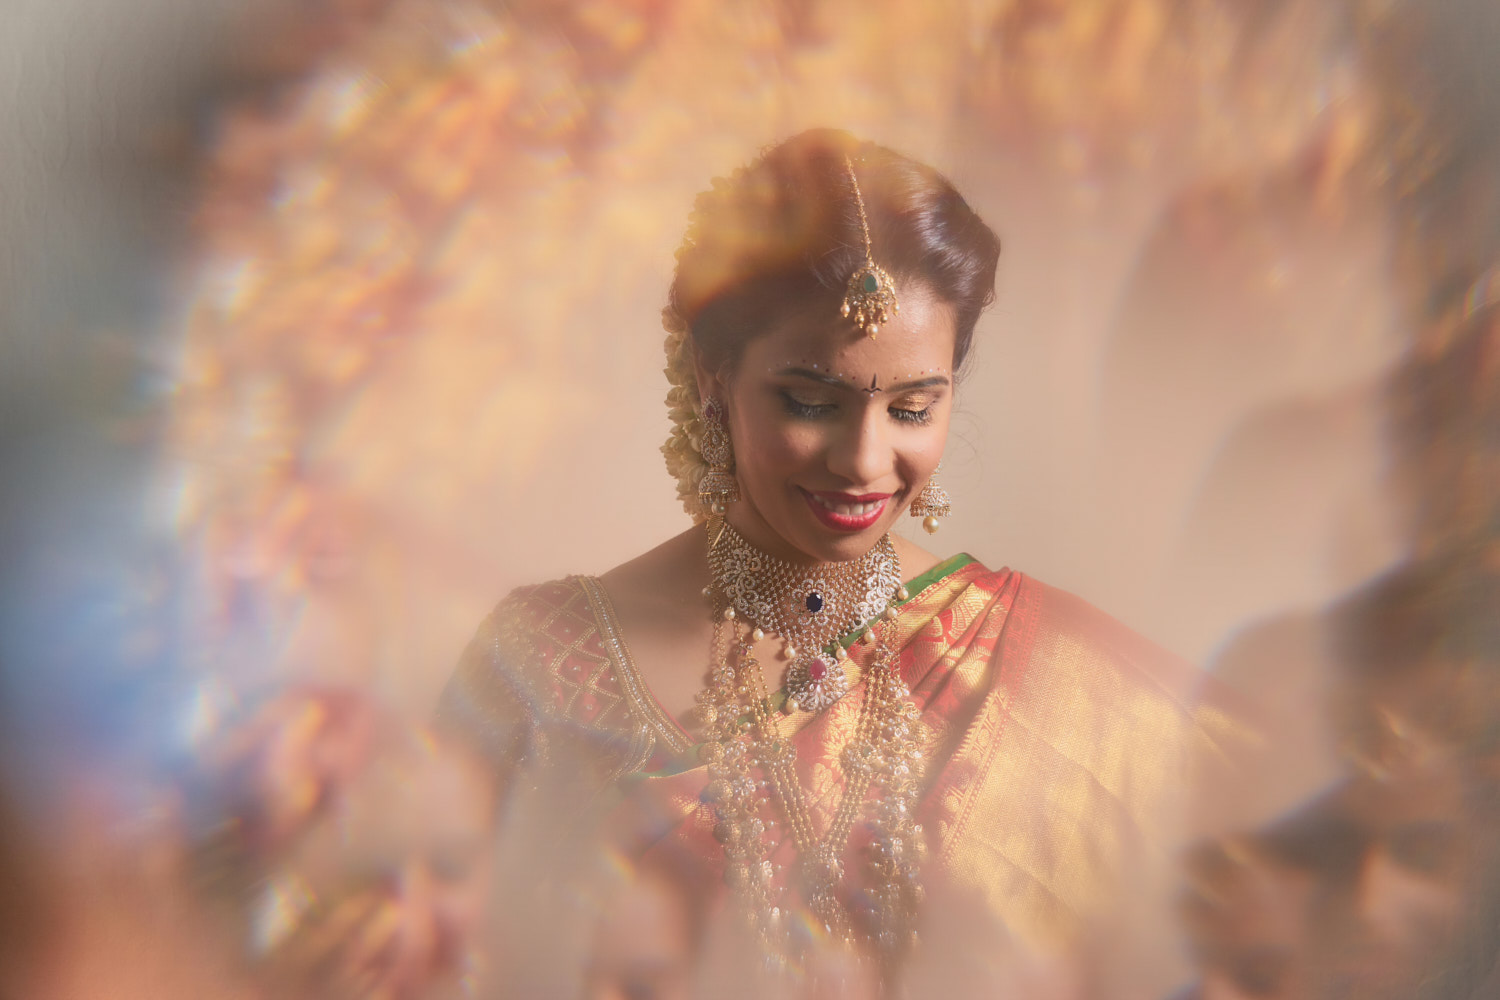 south-indian-wedding-ceremony-photography-by-afewgoodclicks-net-in-saratoga 80.jpg